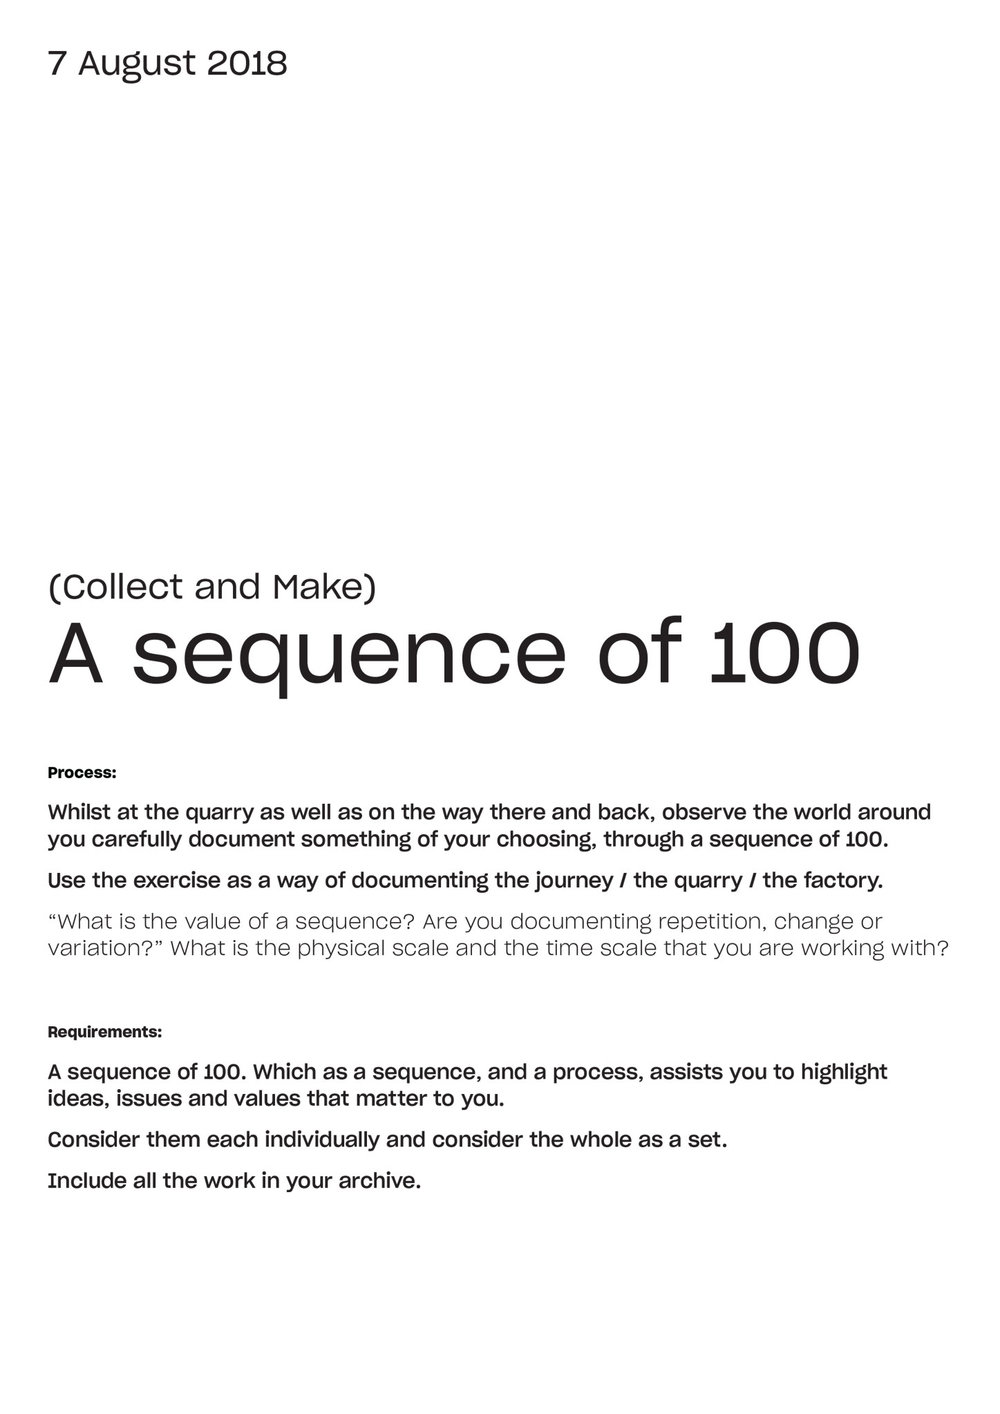 6-A-sequence-of-100.jpg